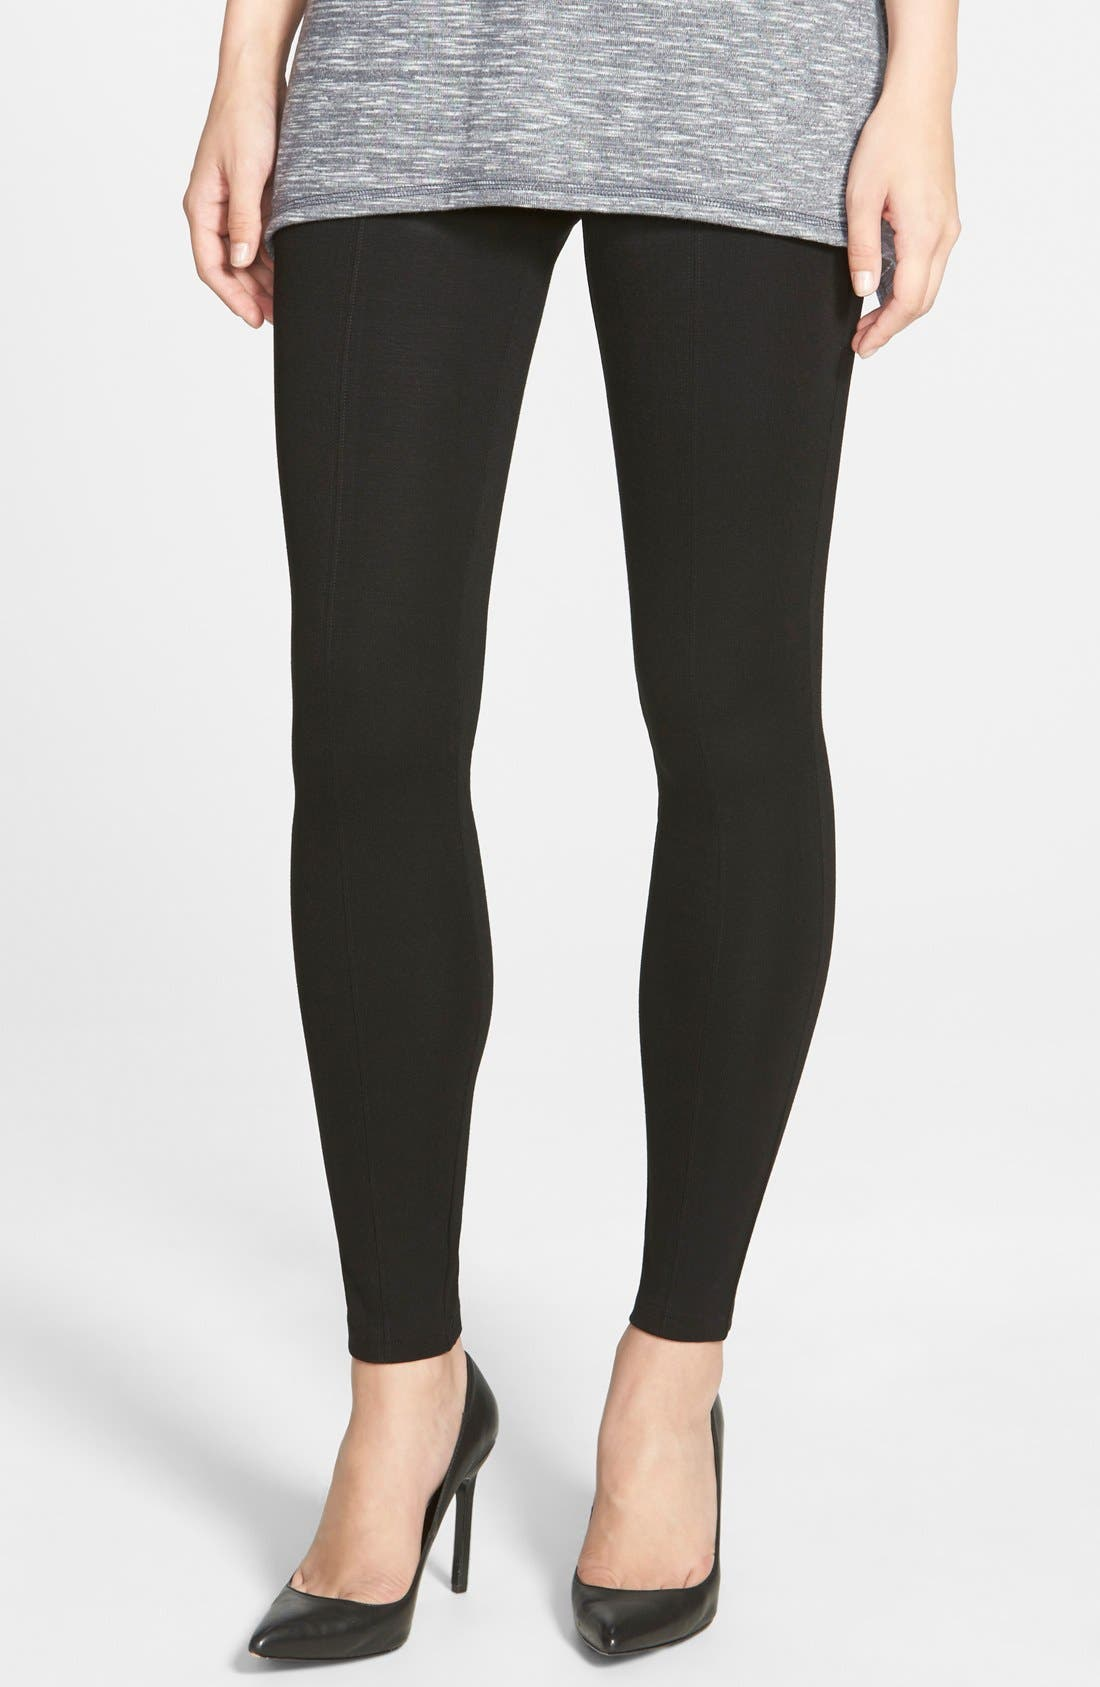 Blackout Leggings,                             Main thumbnail 1, color,                             Black